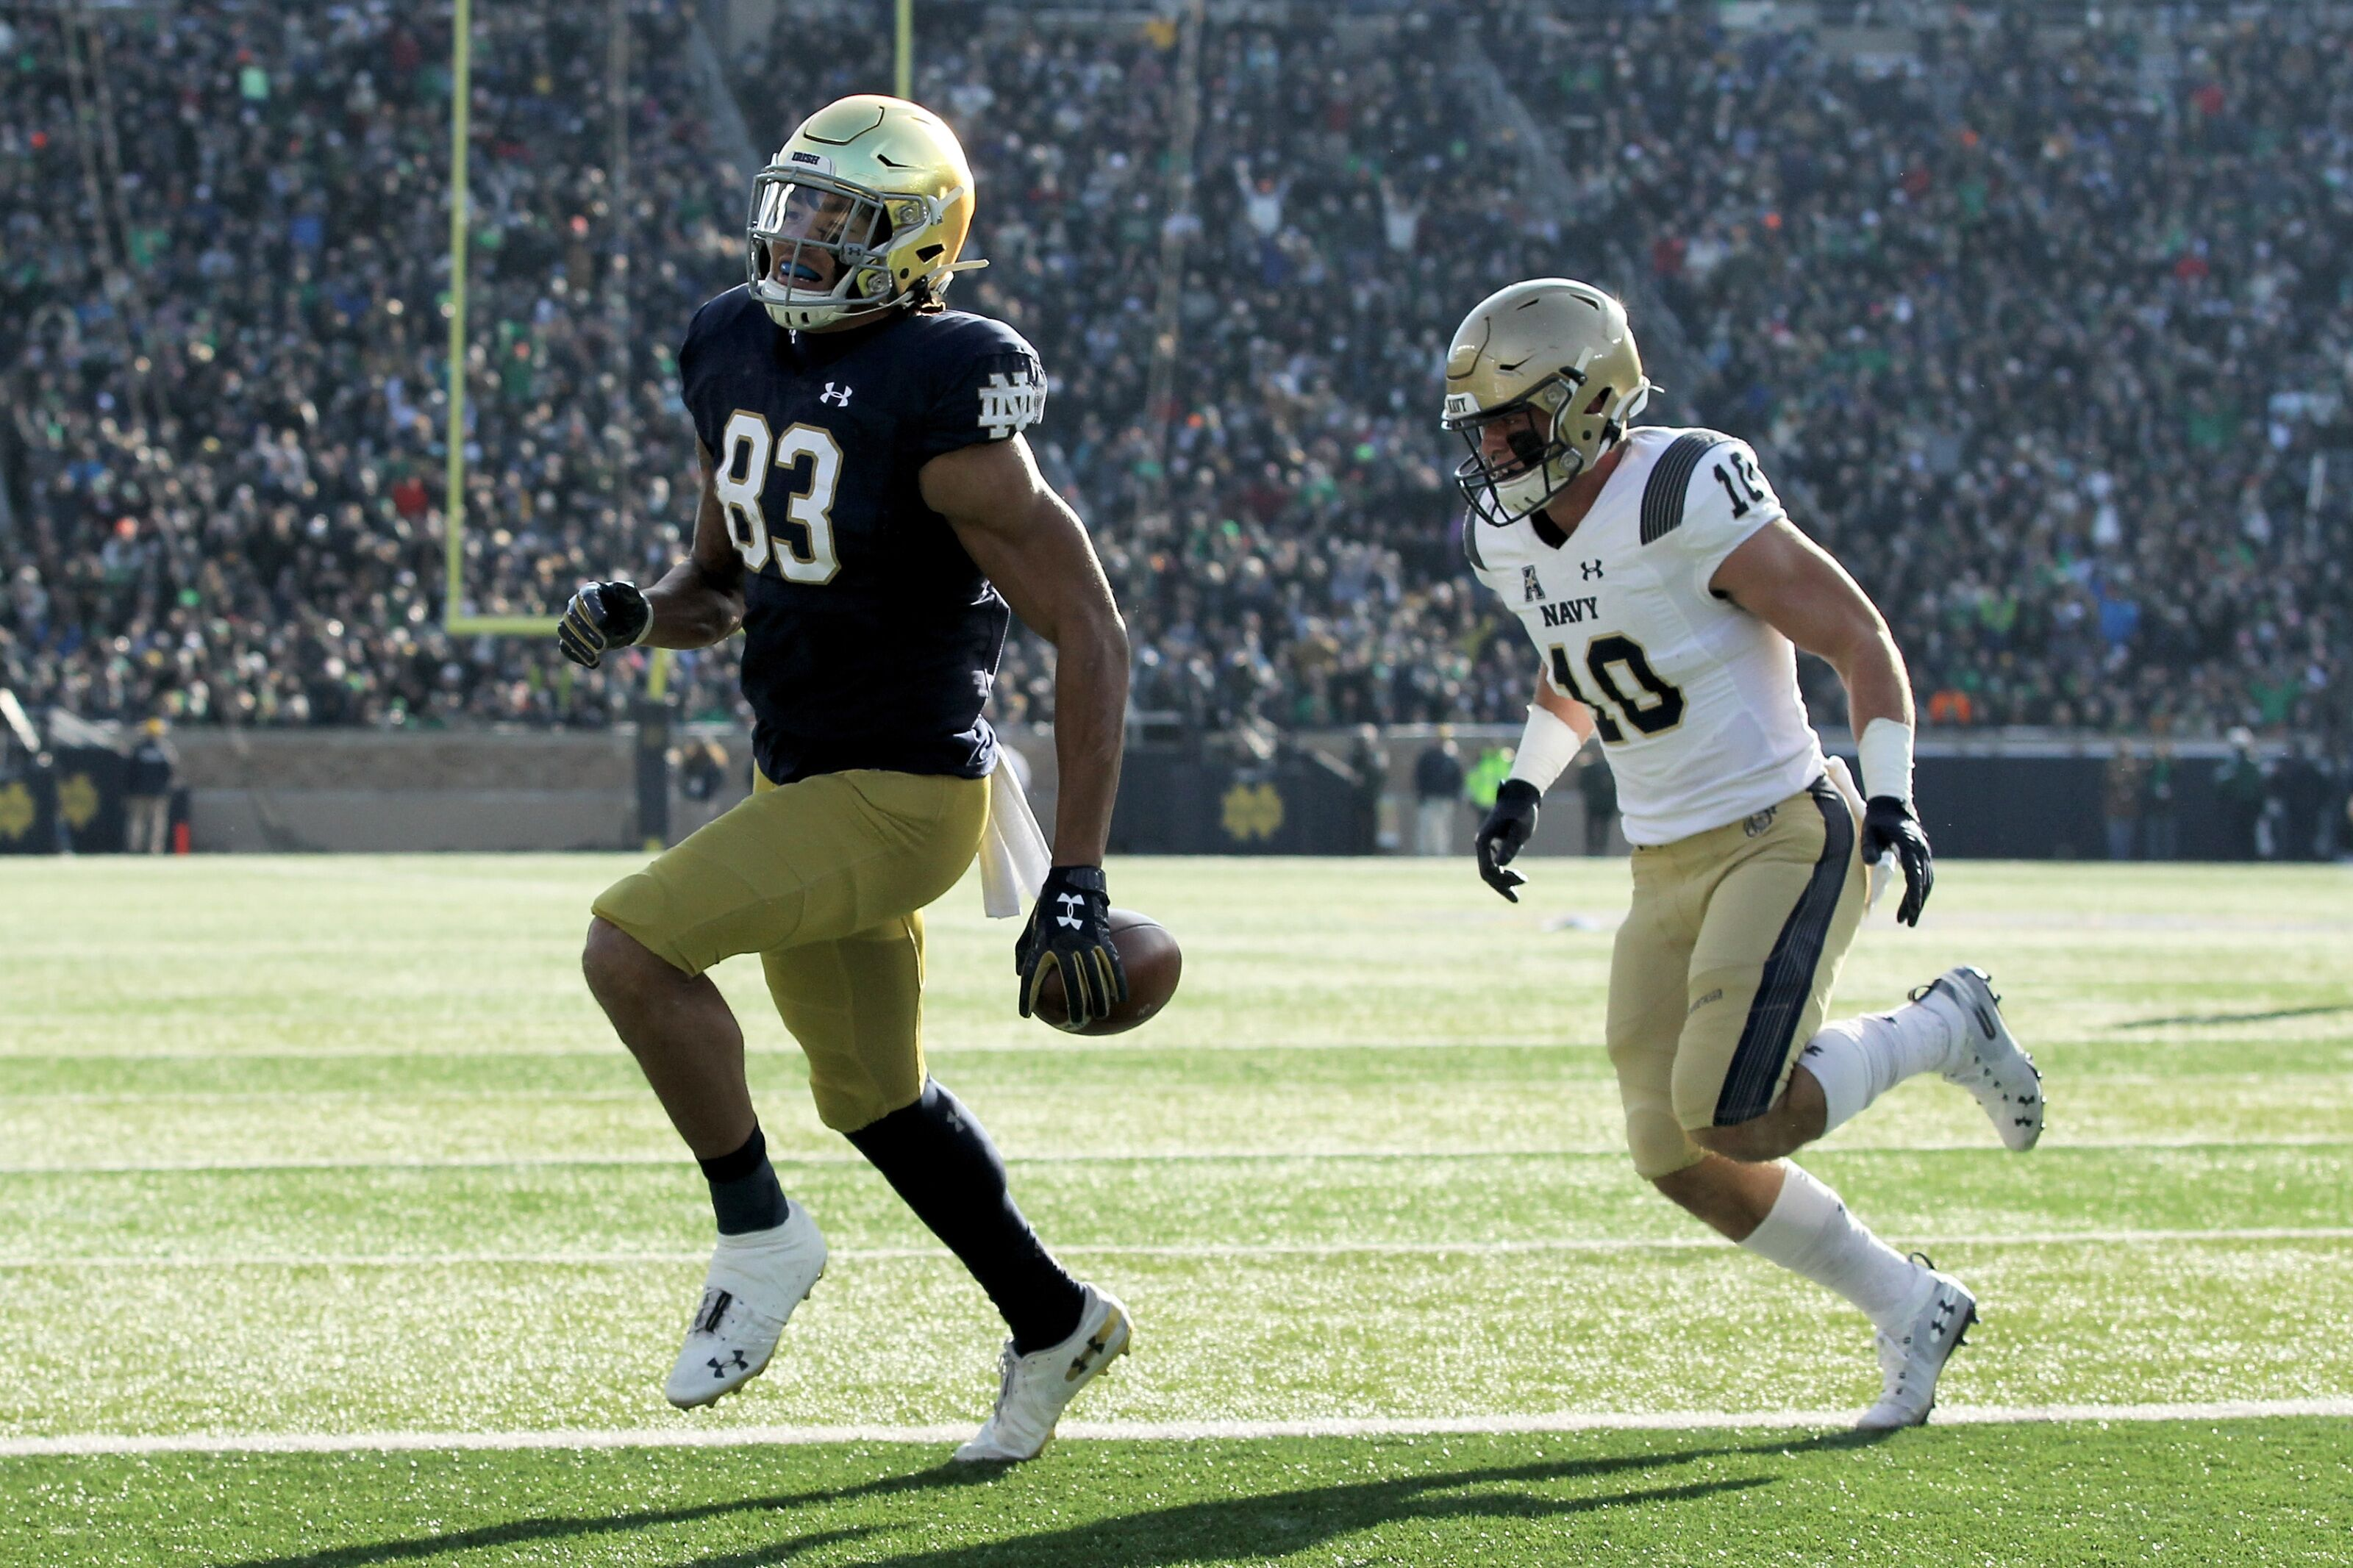 Notre Dame football looks to maintain momentum, dominate Boston College